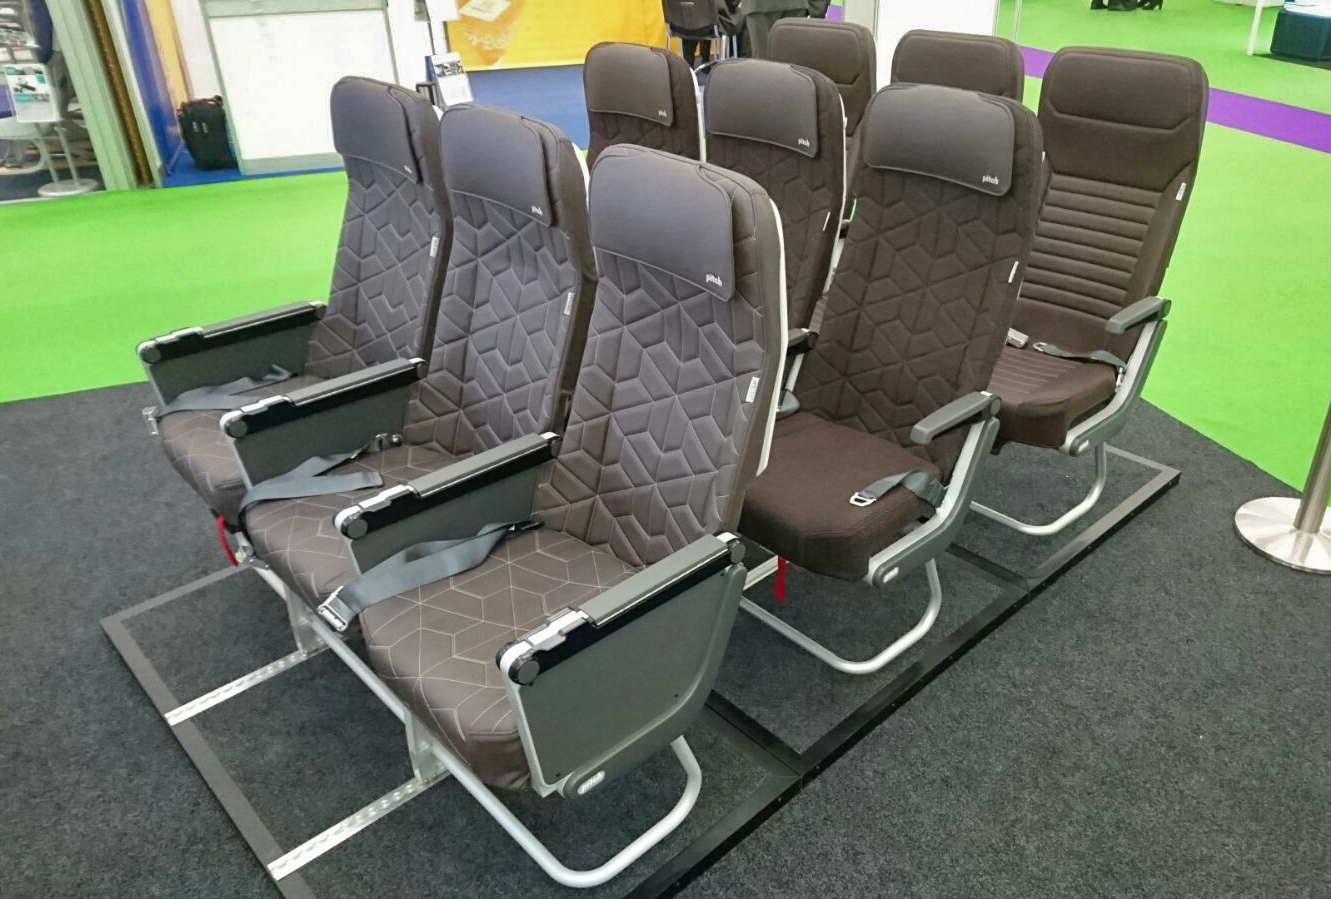 Pitch PF2000 Economy Seat